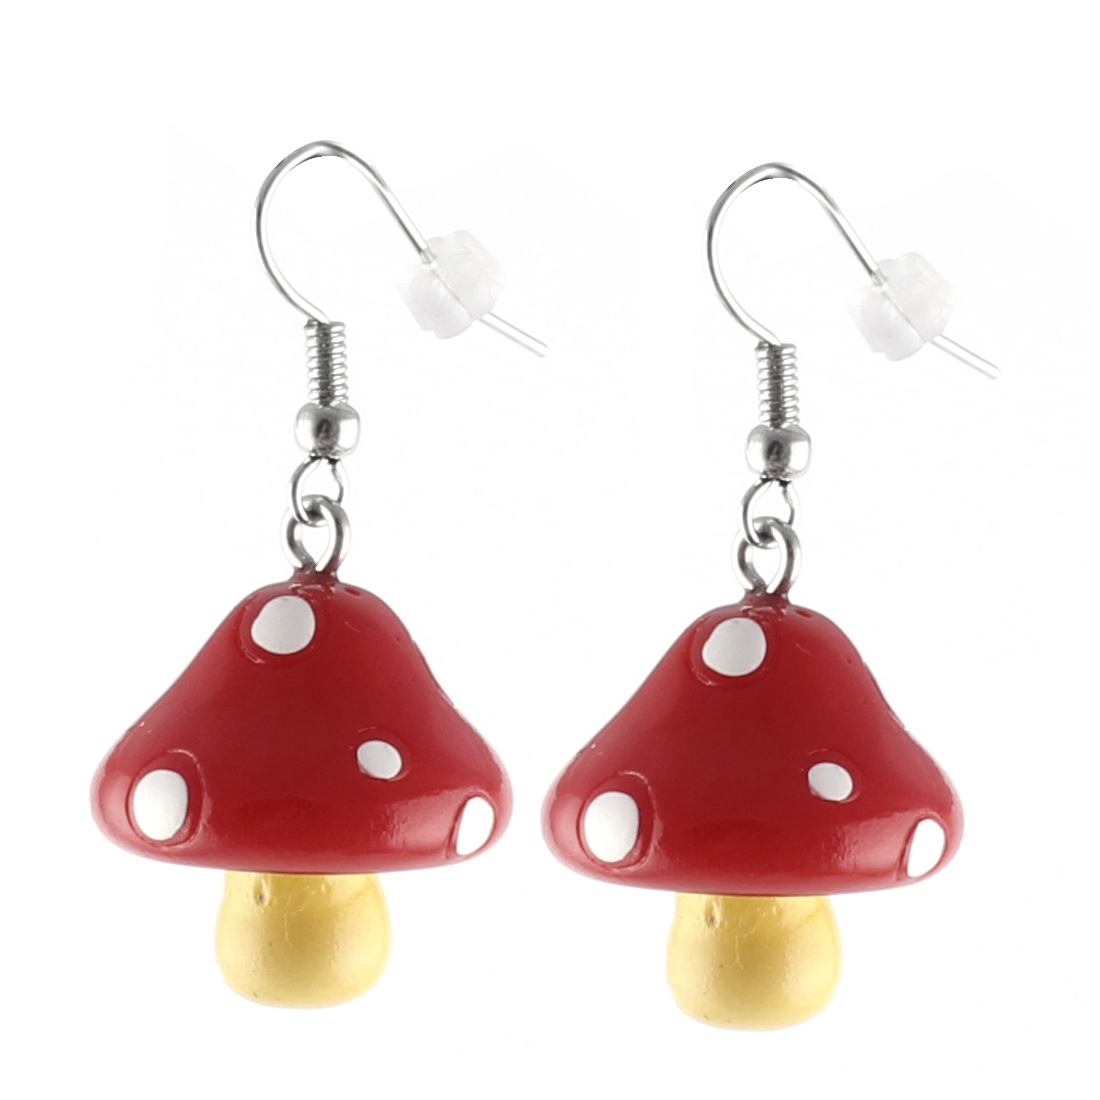 Pair White Dots Red Mushroom Pendant Dangling Fish Hook Ear Drops Earrings Eardrops